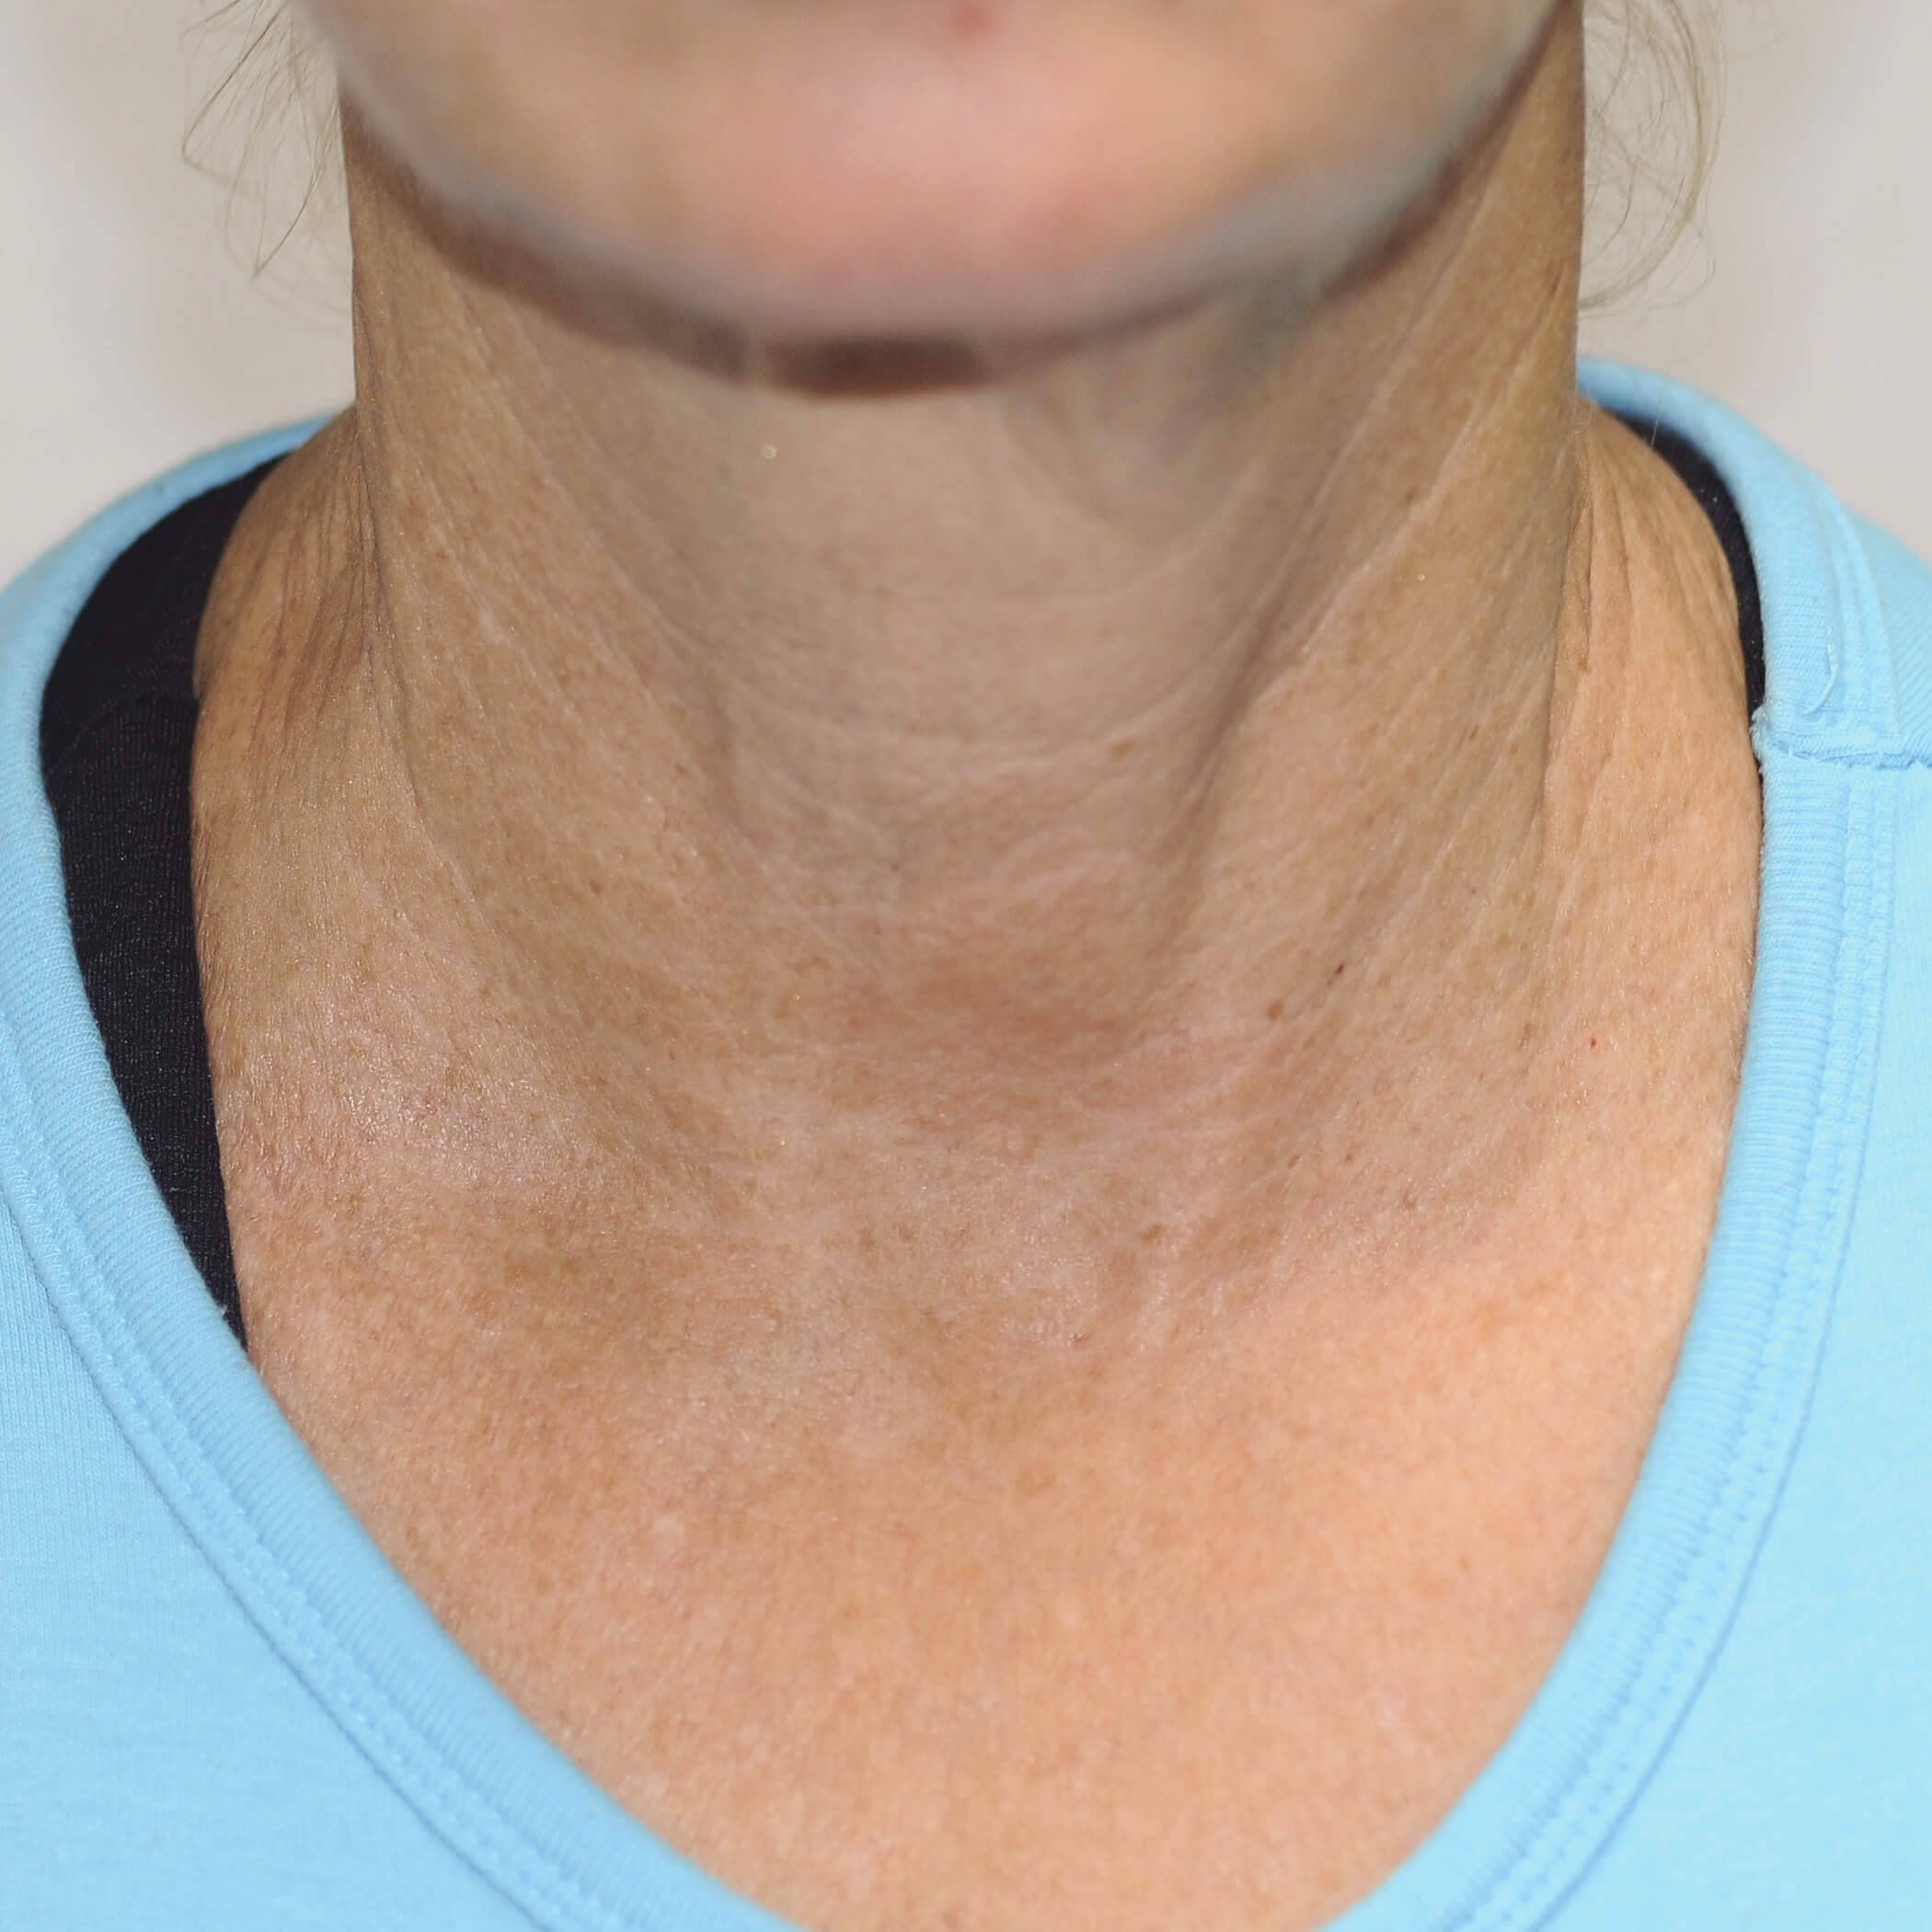 exilis facial skin tightening after neck